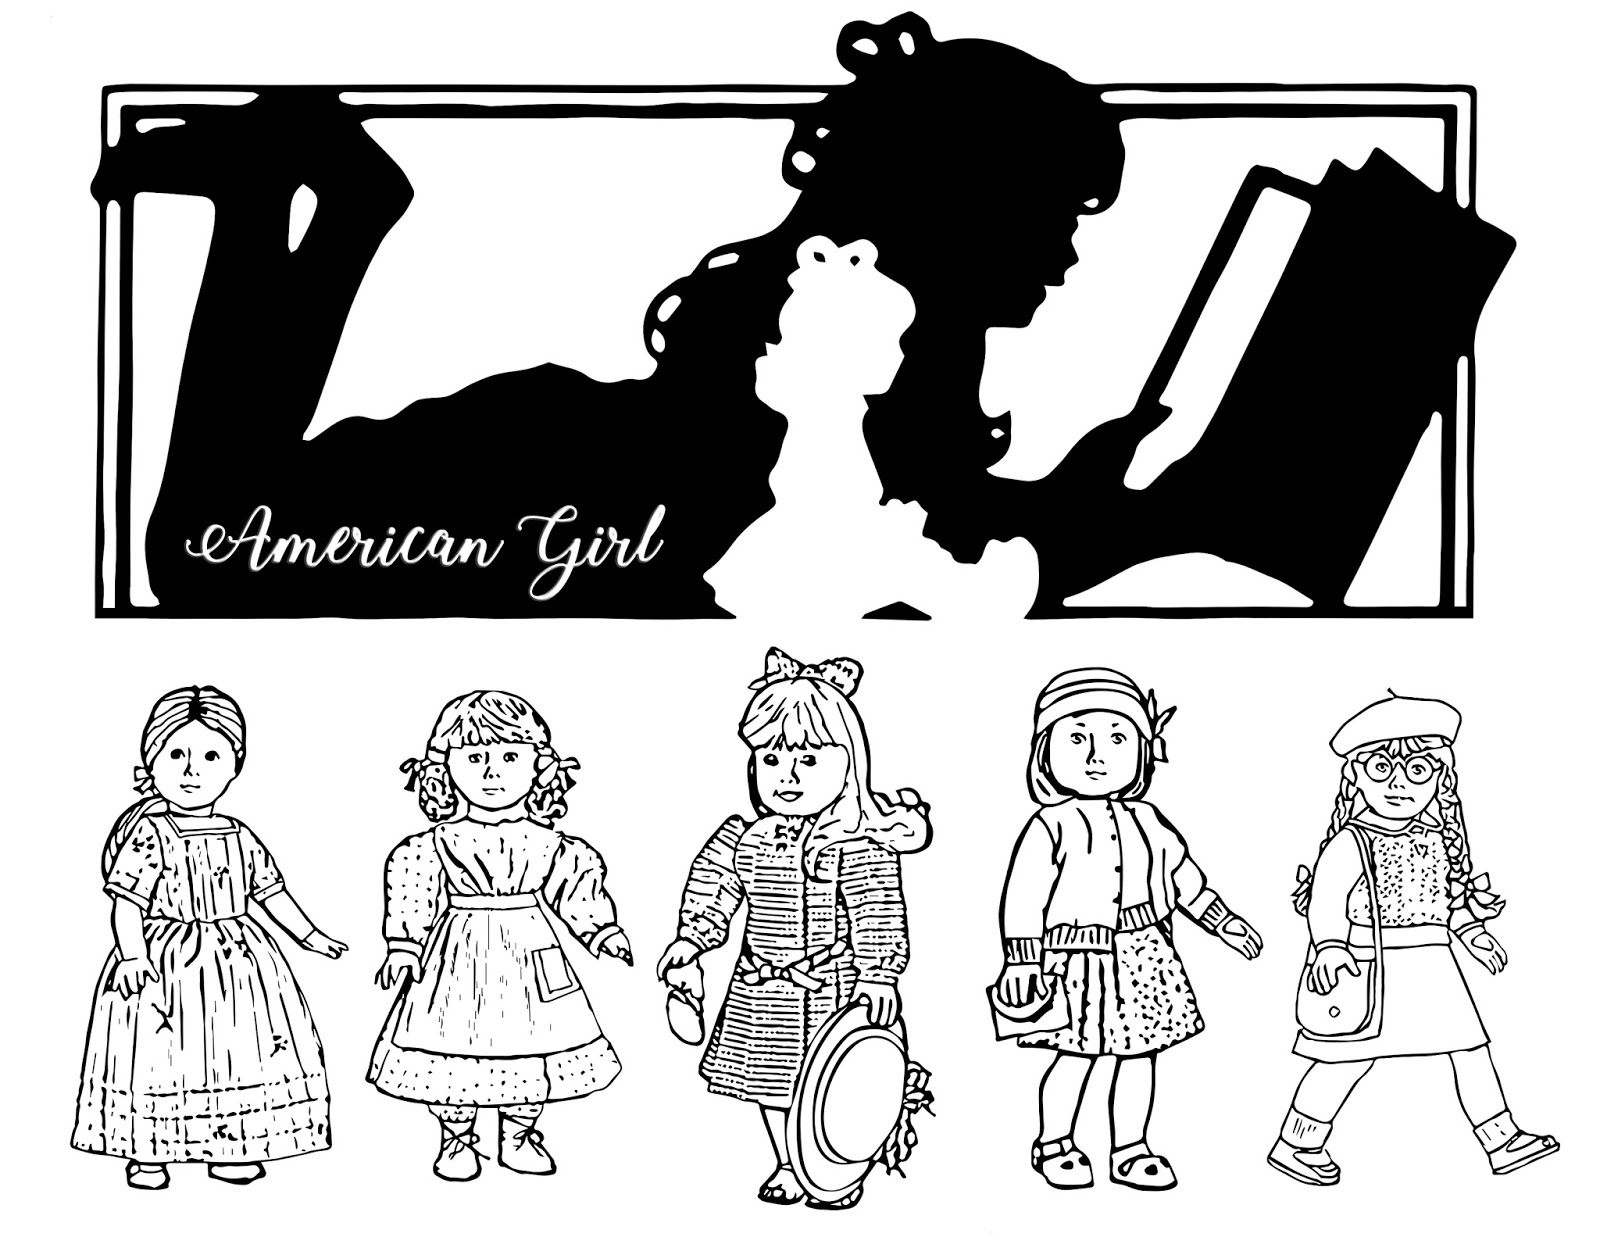 j american girl coloring pages | My Cup Overflows: April 2018